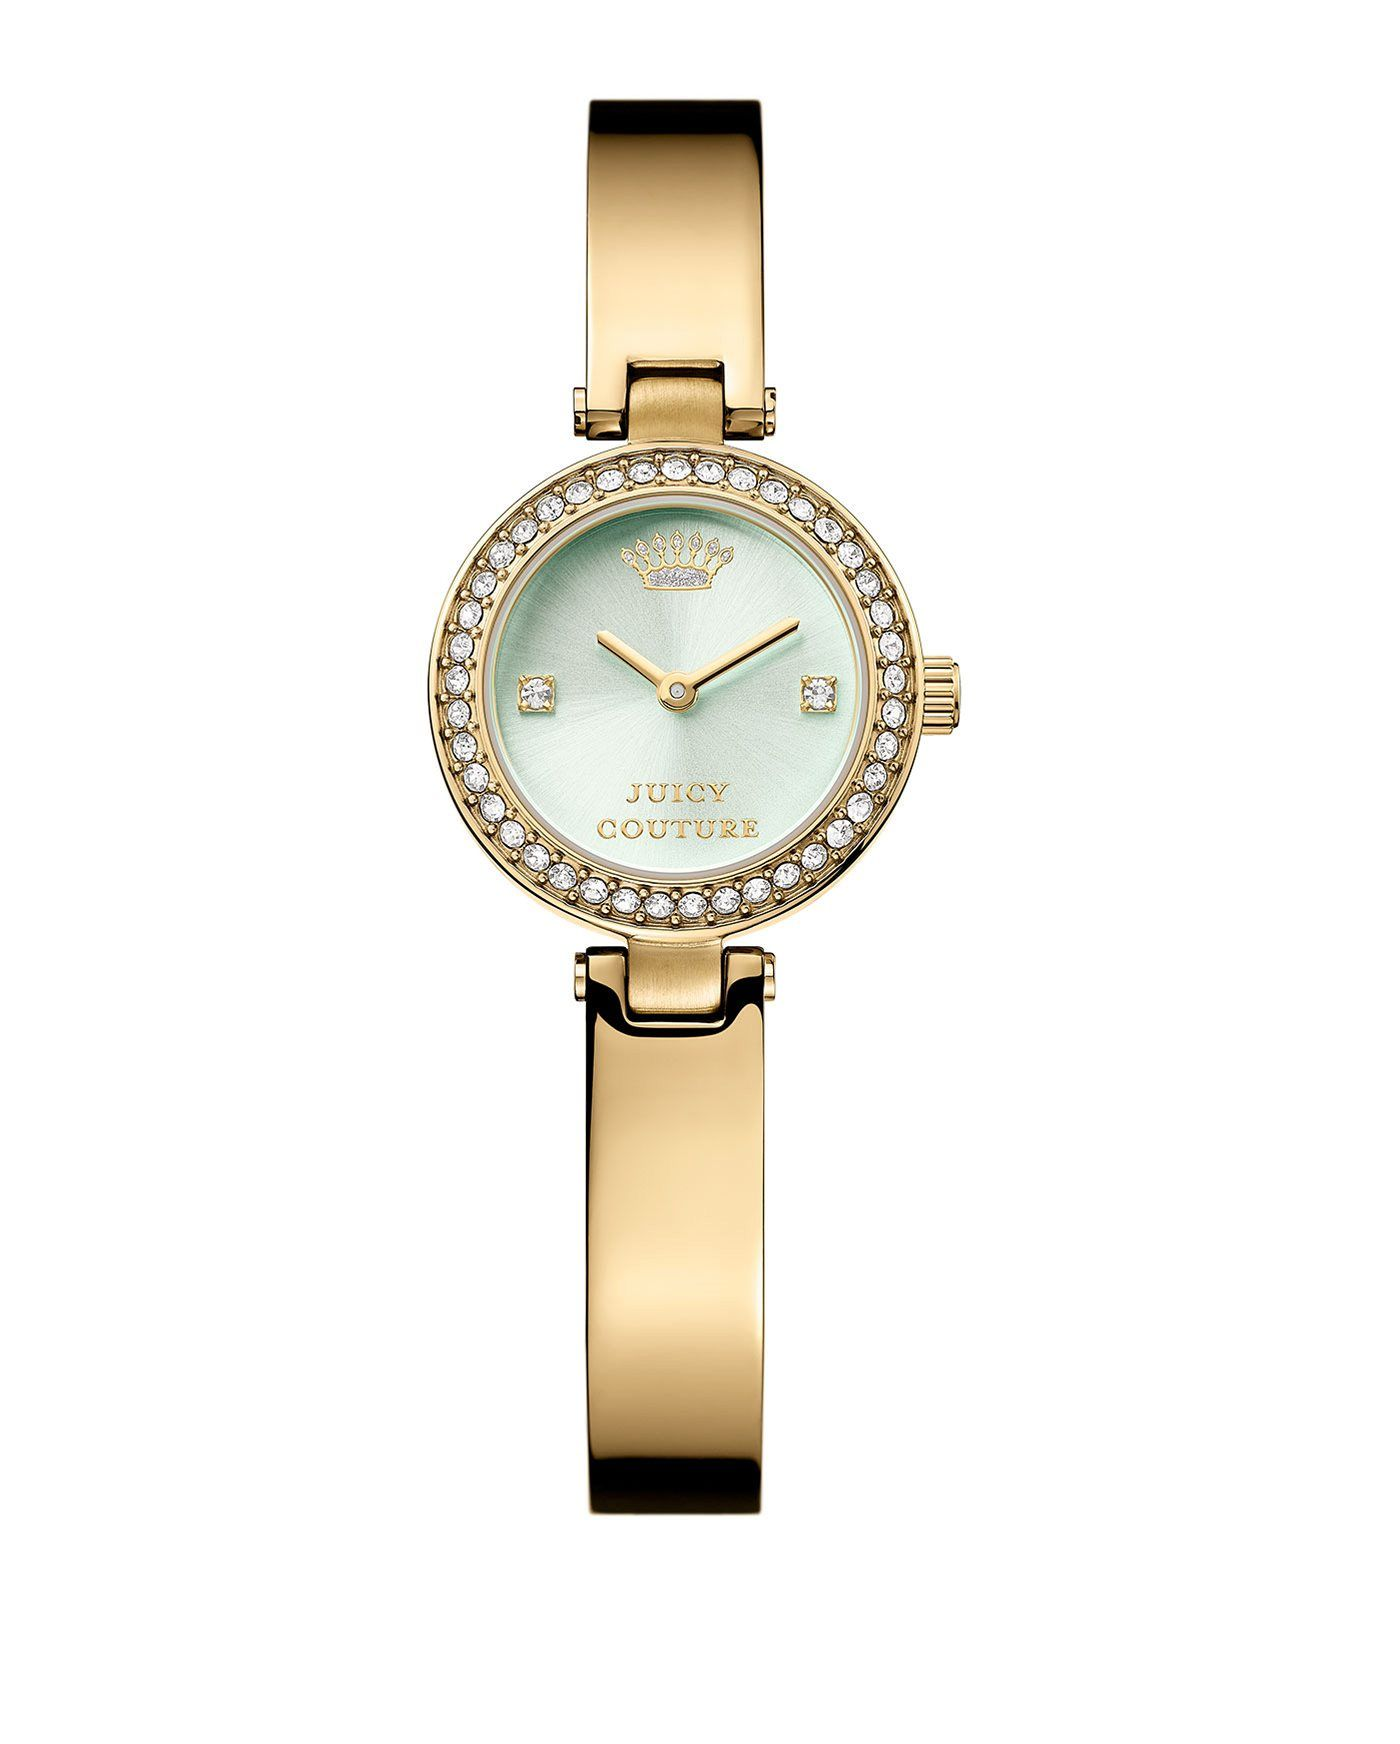 af6d5c186 Pin by 1010sk on Hodinky | Watches, Juicy couture, Bangle bracelets